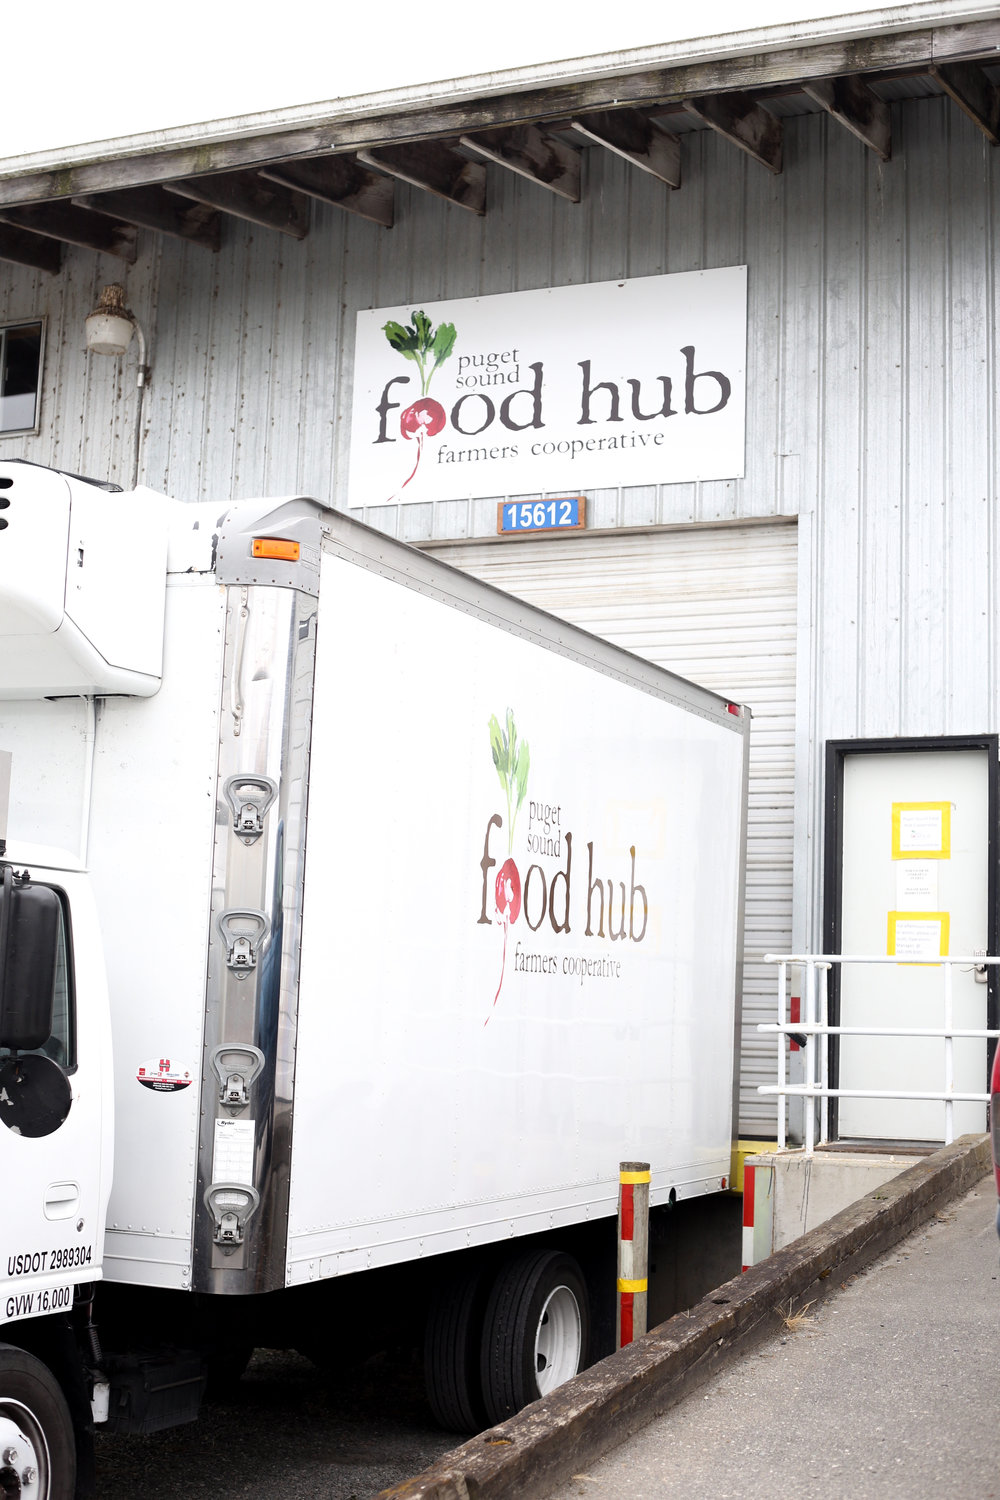 The exterior of the Puget Sound Food Hub warehouse.